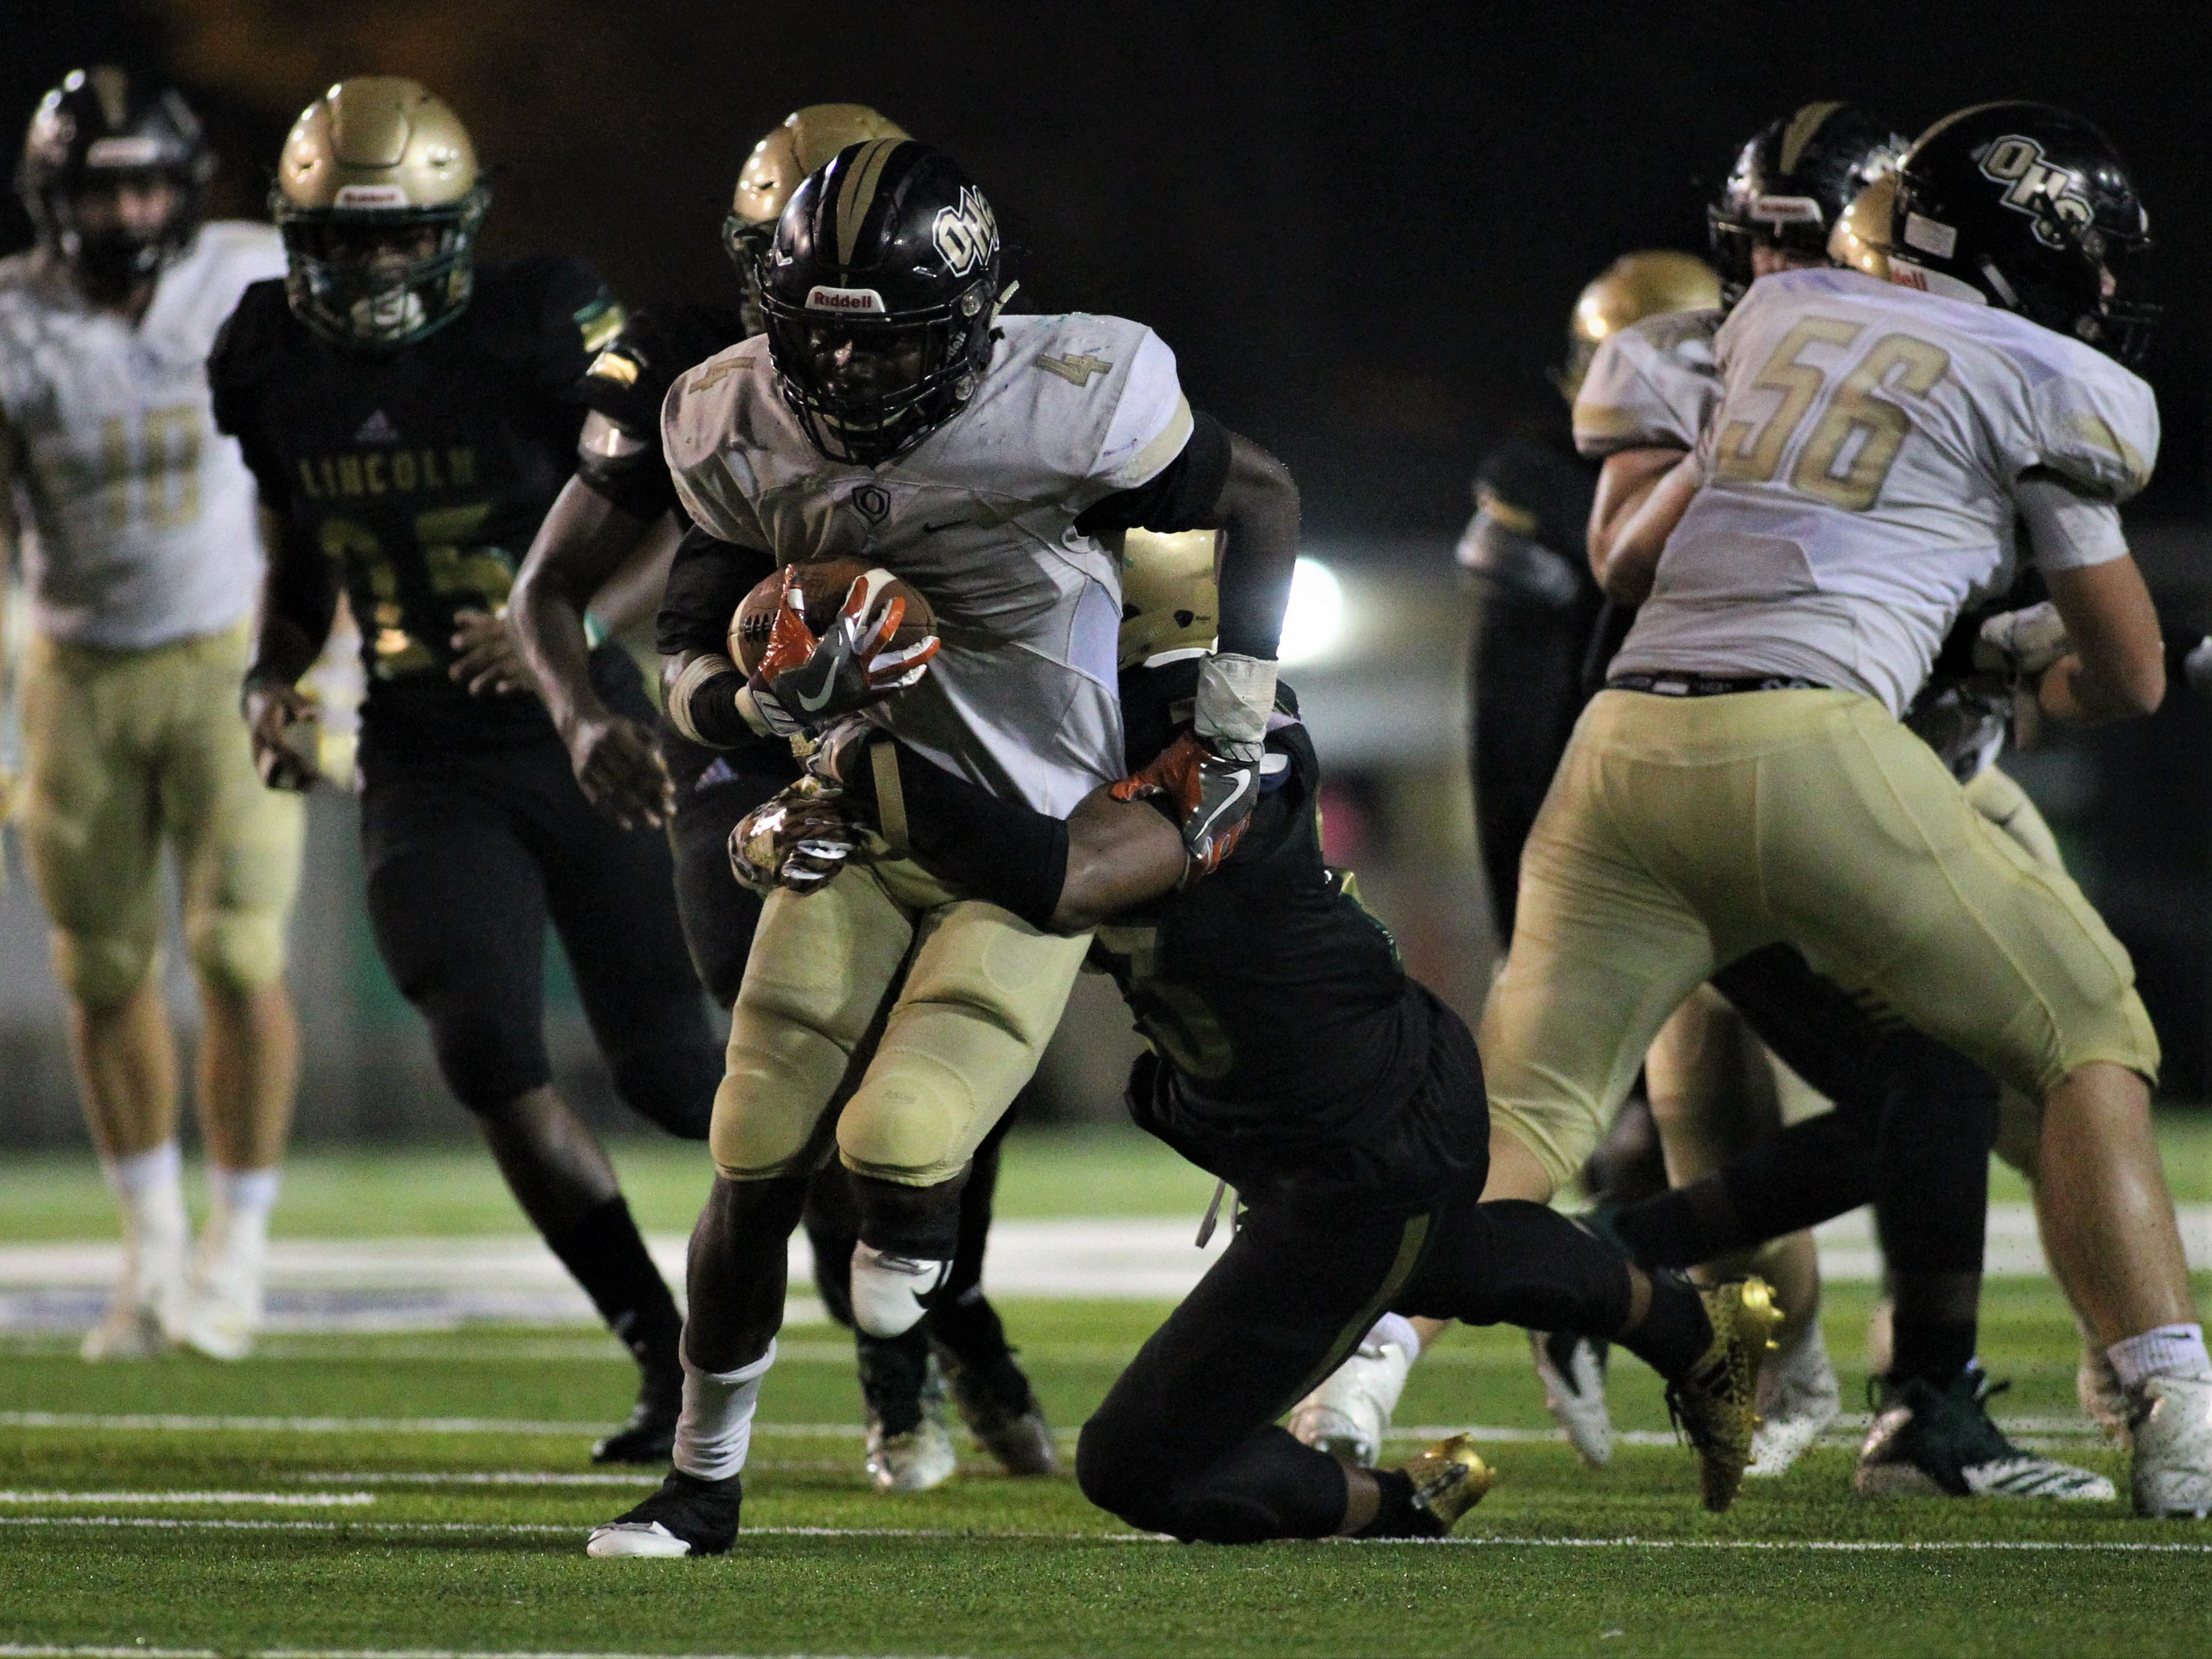 Oakleaf running back Keshawn King is tackled from behind by Lincoln's Daniel Newman, and Lincoln beat Oakleaf 38-31 in three overtime periods during a Region 1-7A quarterfinal Thursday night at Gene Cox Stadium.